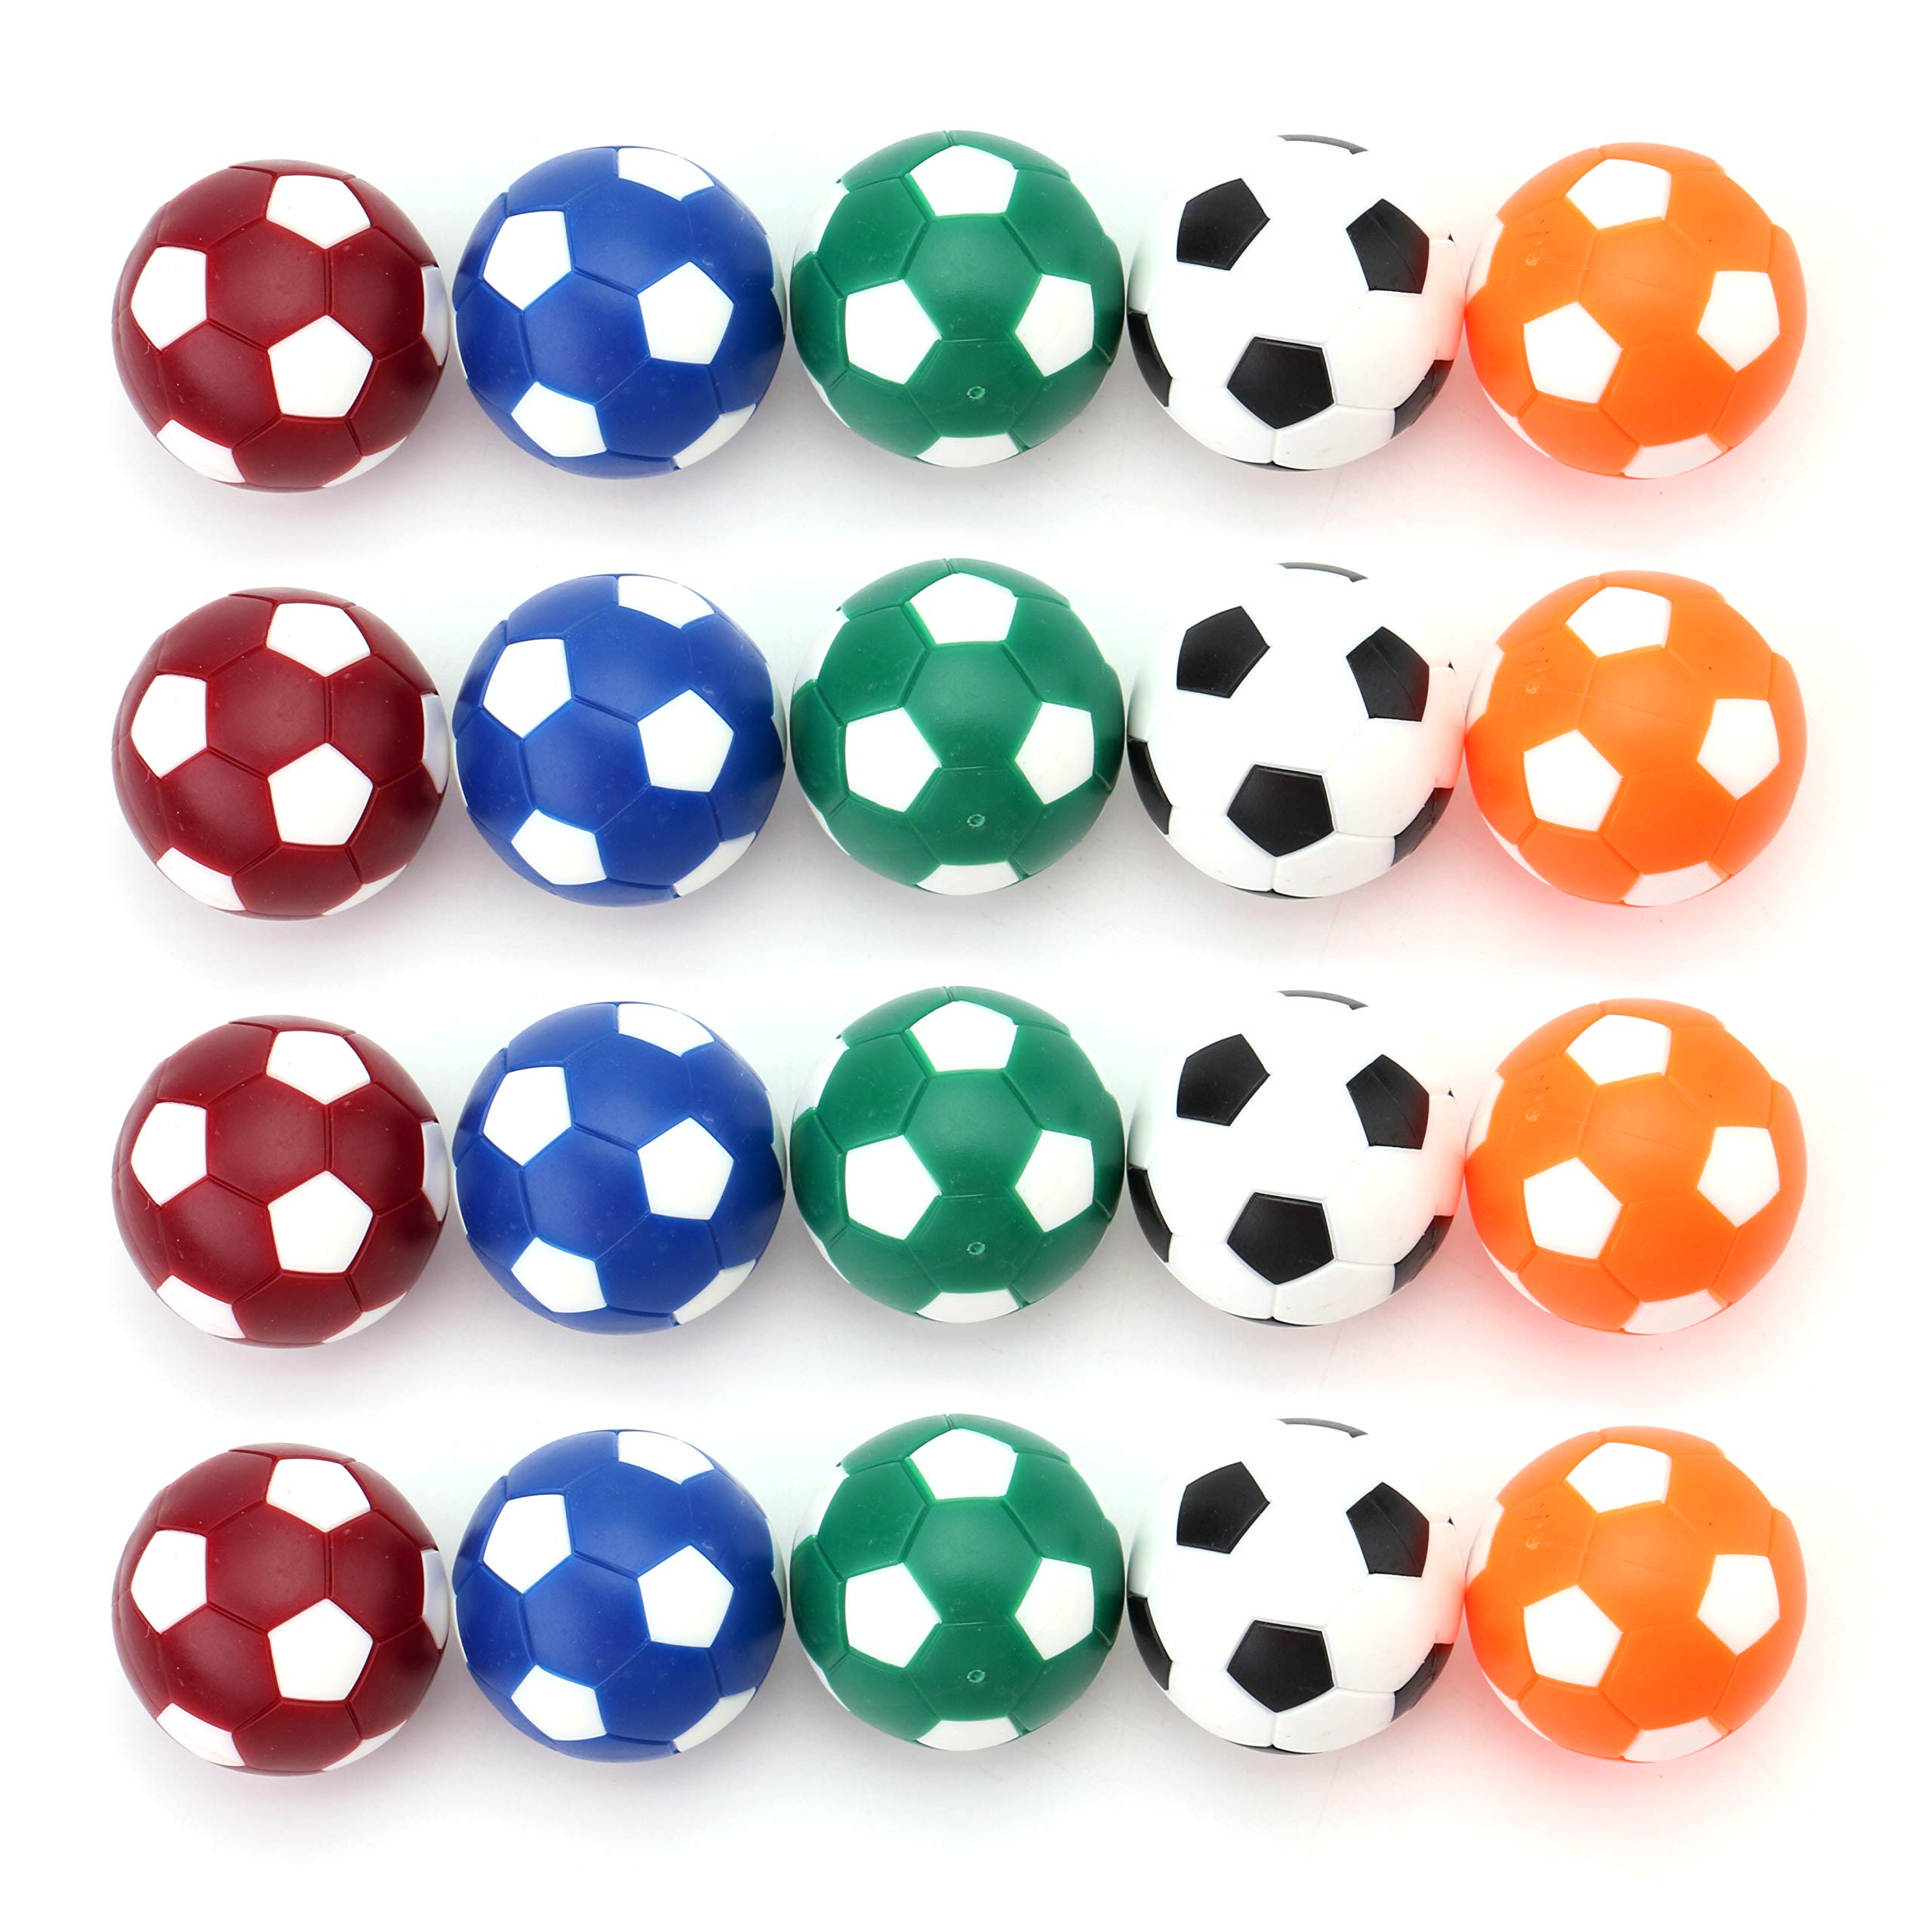 Fasmov Table Soccer Foosballs Replacements Mini Multicolor 36mm Official Foosball - Set of 20 by Fasmov